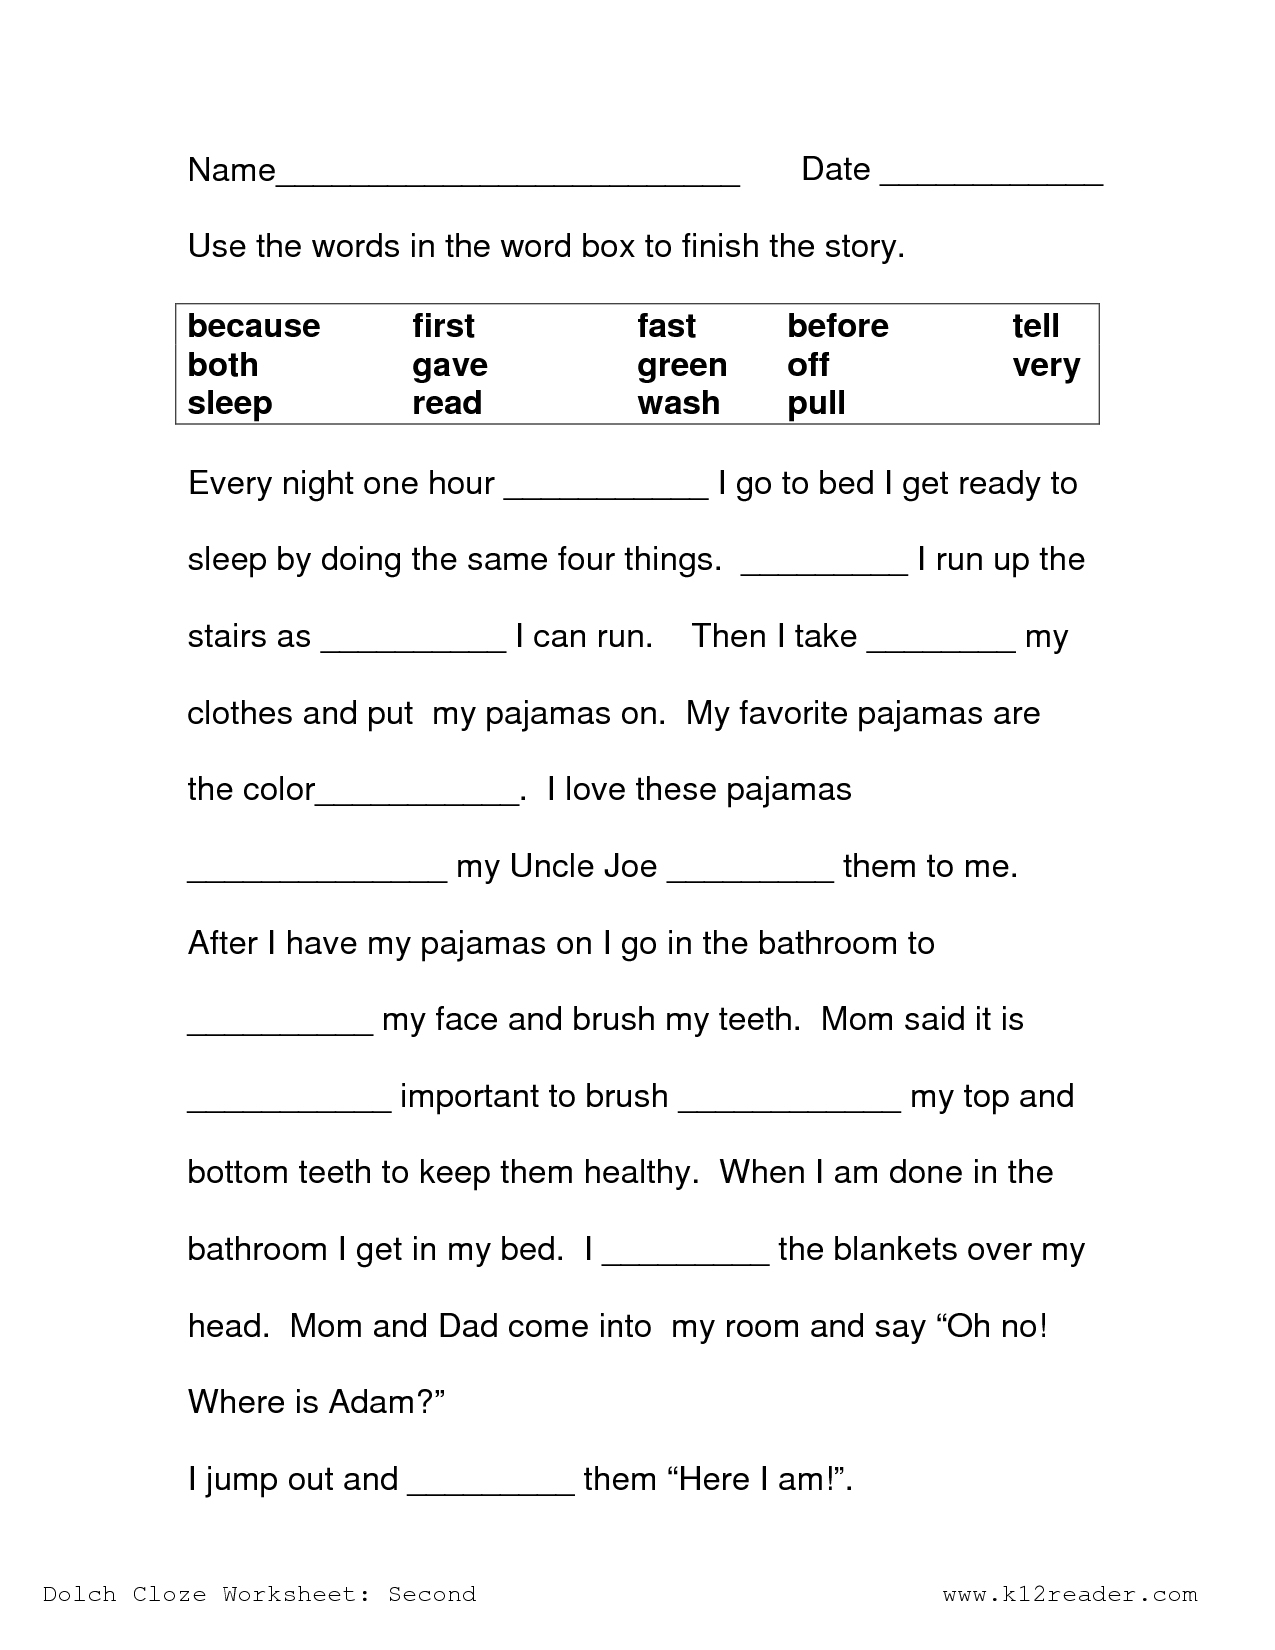 Math Worksheet: 2Nd Grade Science Worksheets Free Printable Easy - 4Th Grade Printable Crossword Puzzles